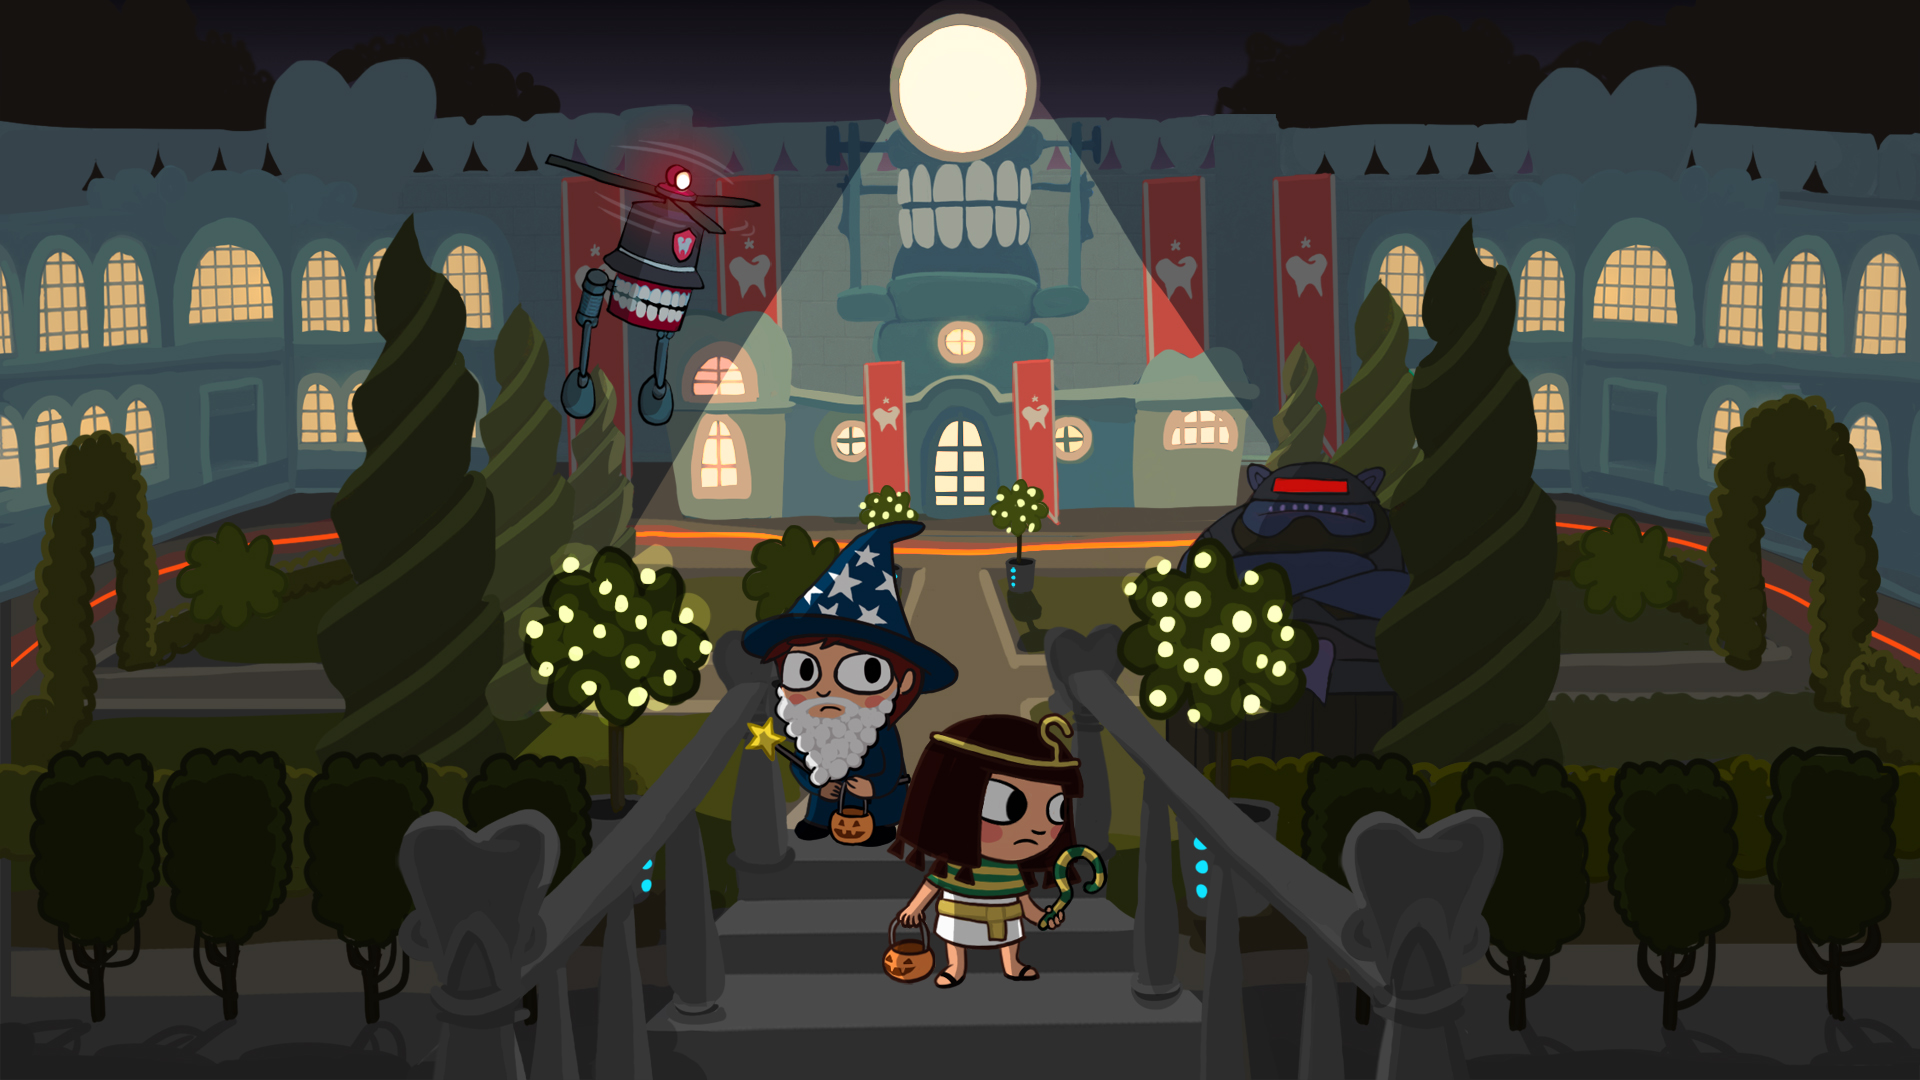 Steam card exchange showcase costume quest 2 card 3 of 9artwork dr whites inner sanctum malvernweather Image collections